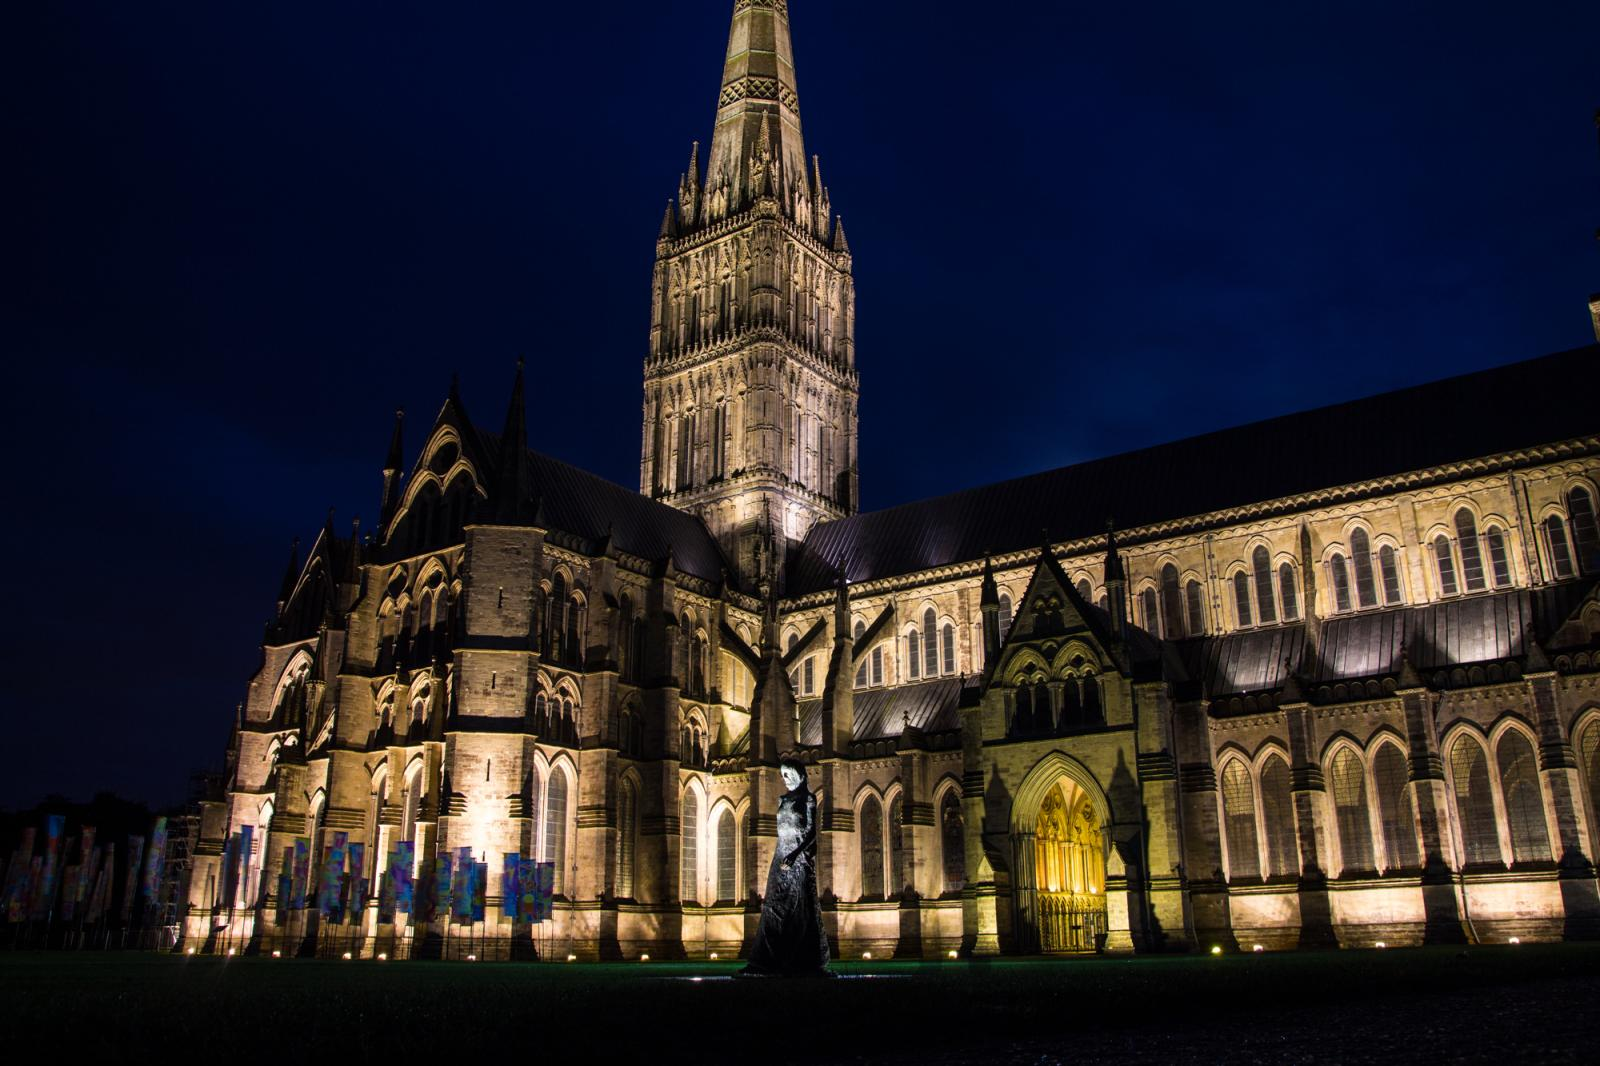 Salisbury Cathedral at Night